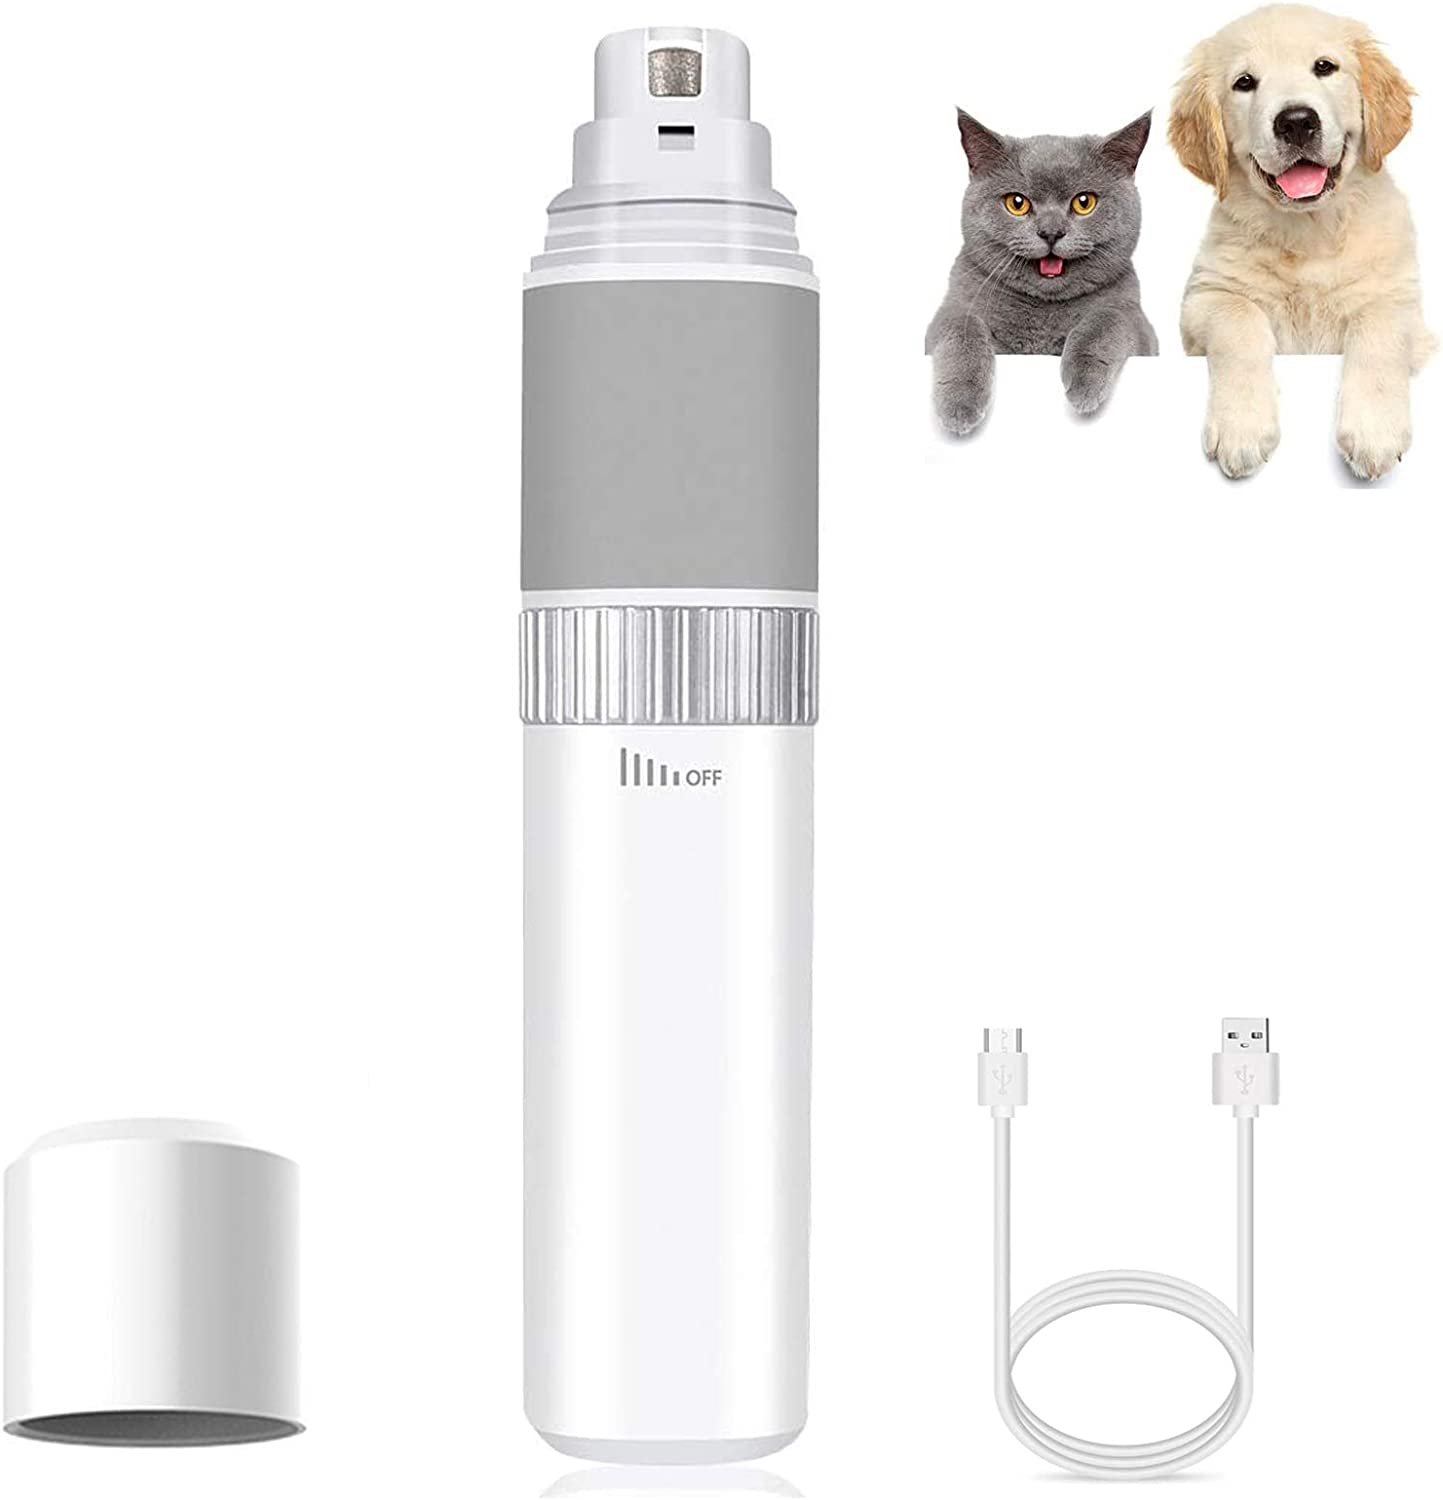 MASALING Nail Clippers for Dogs Premium, Quiet Dog Nail Grinder Stepless Speed Pet Nail Grinder, Professional 7500-PT 5V Nail File for Dogs(White) : Pet Supplies